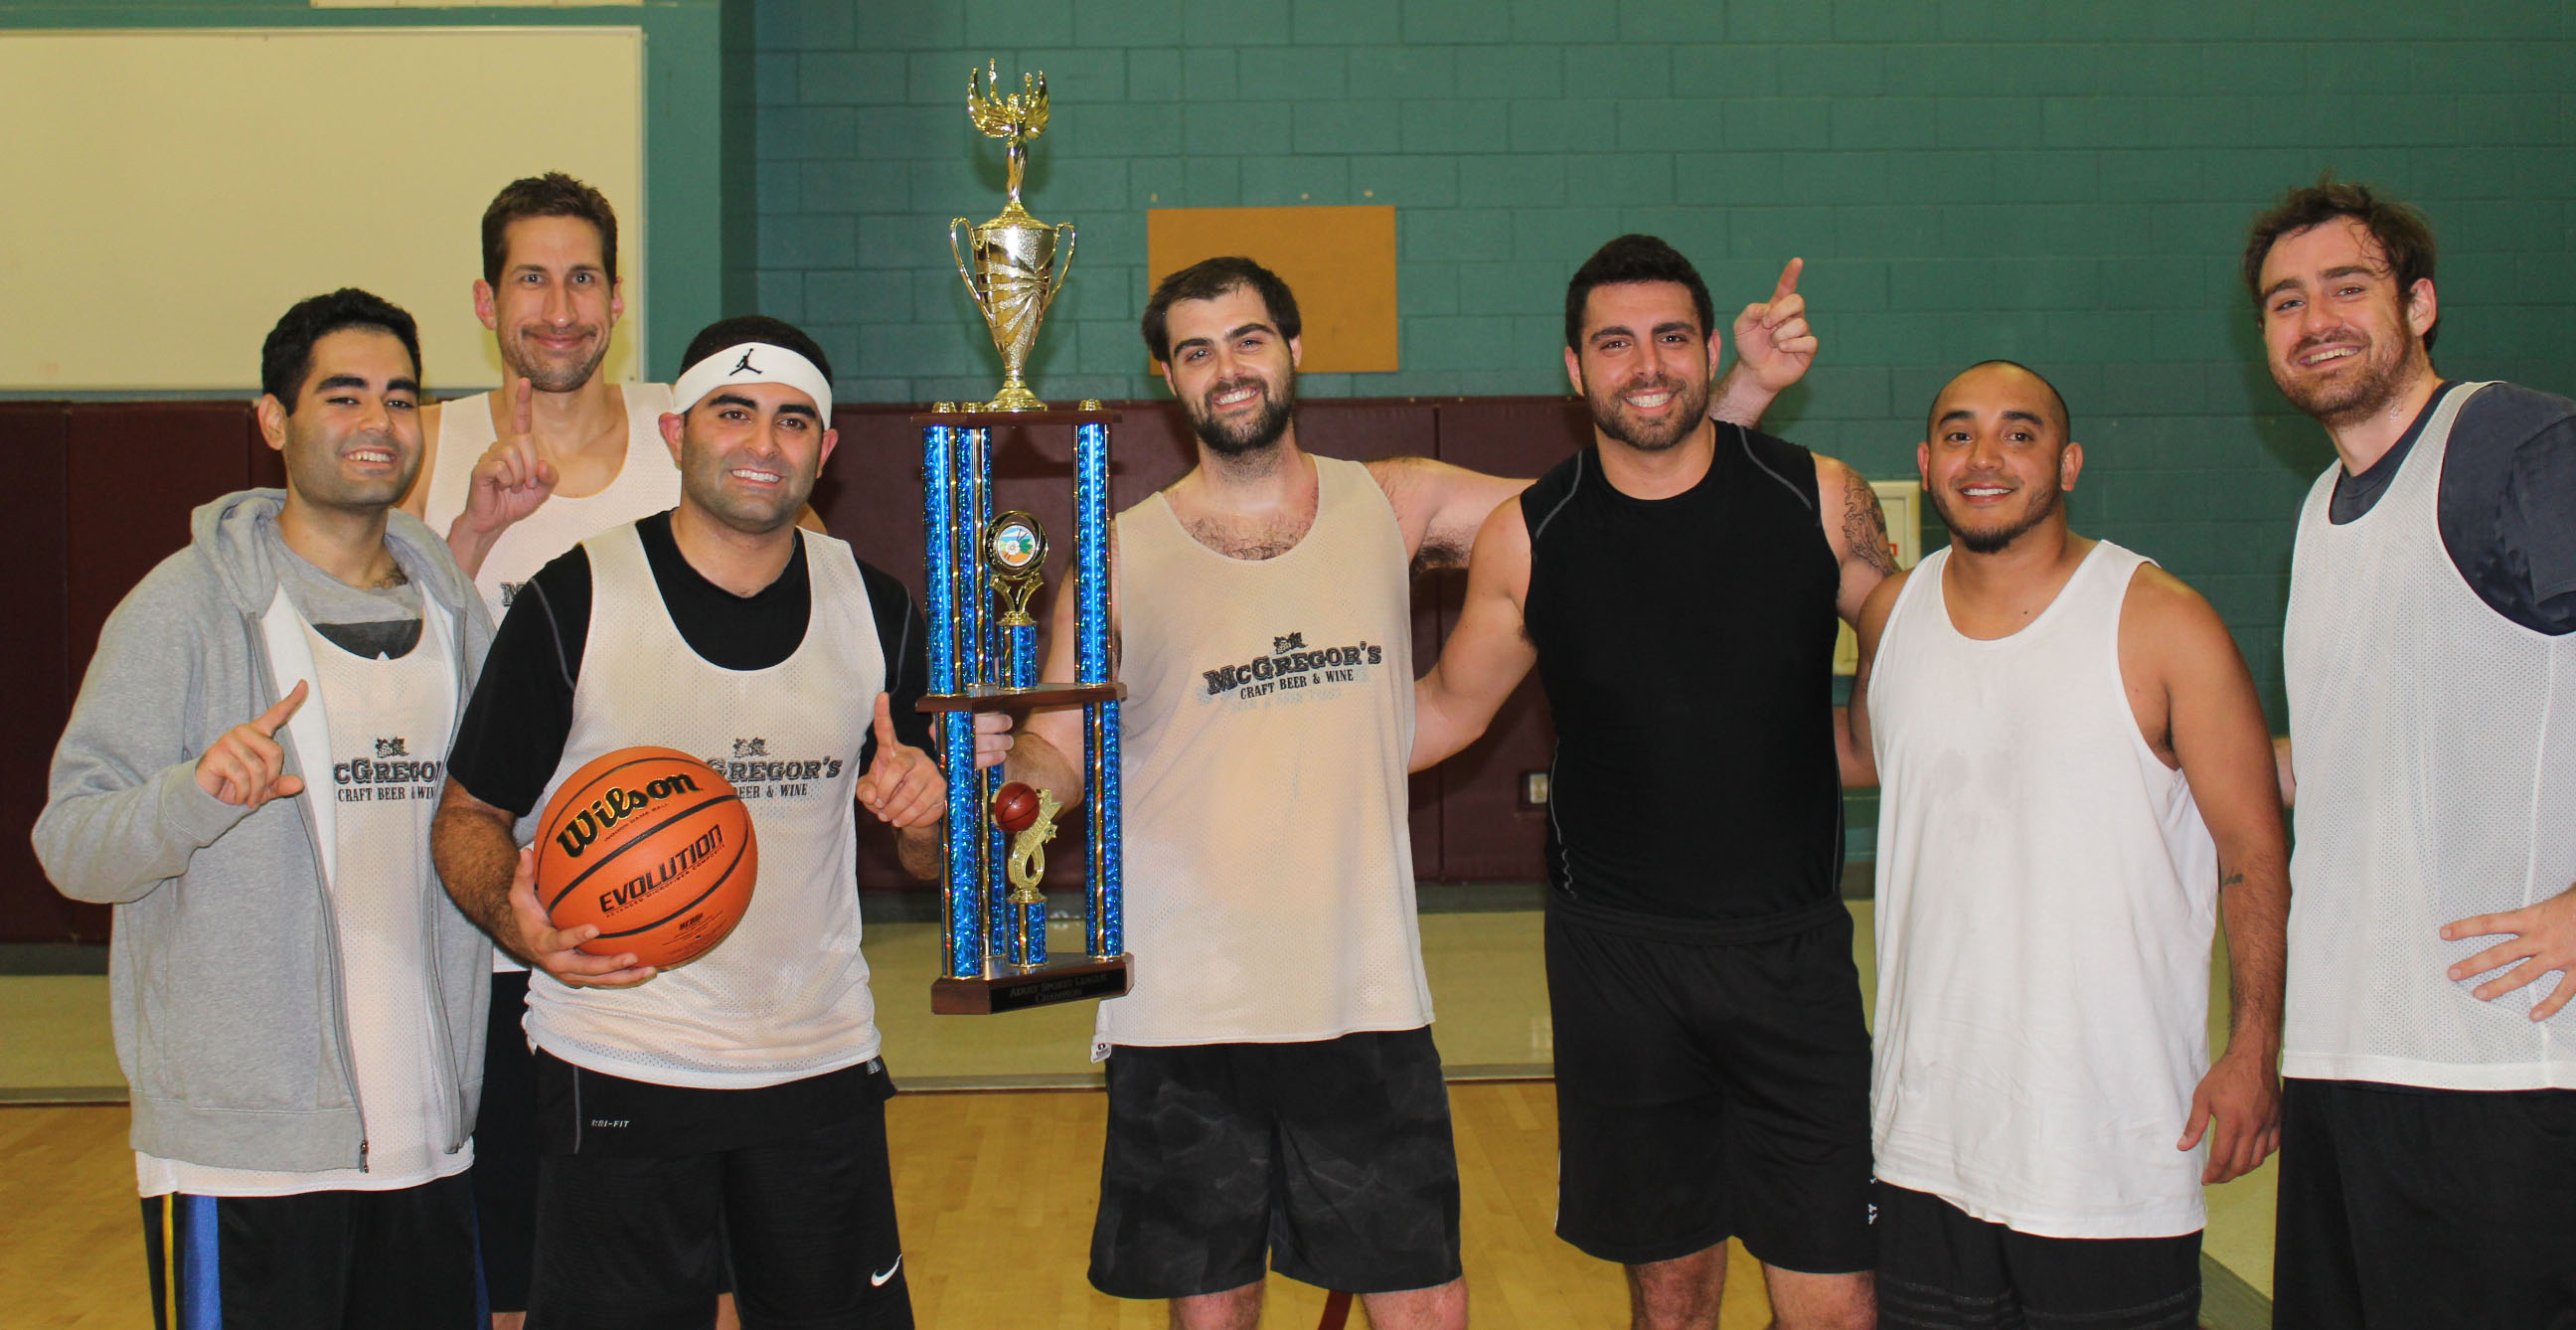 Adult basketball team with trophy